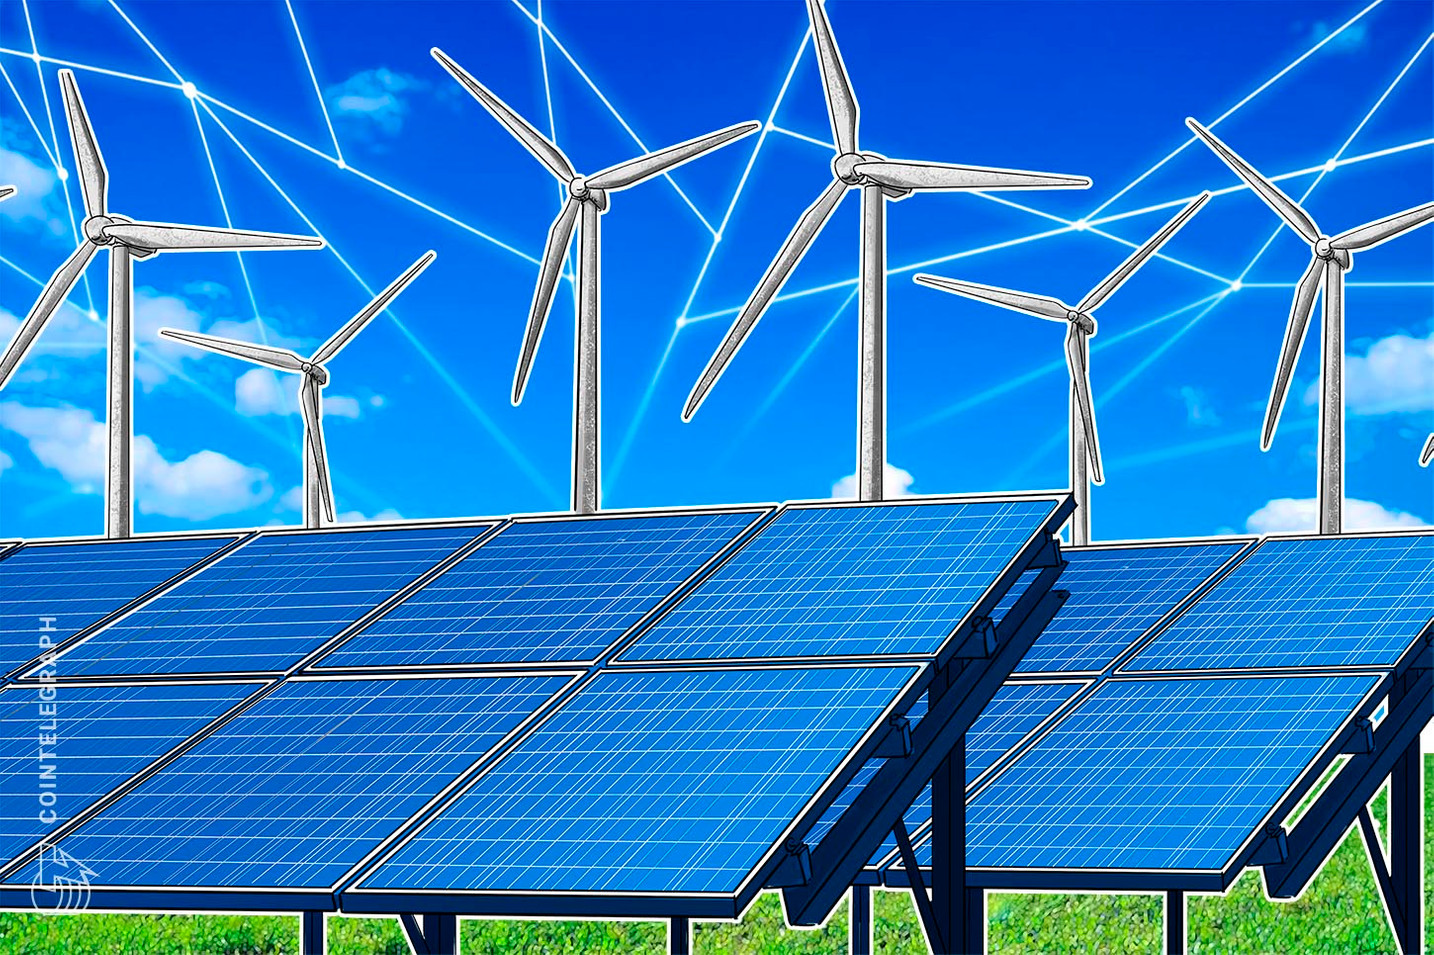 Japanese General Trading Company Backs Blockchain Platform for Wind, Solar